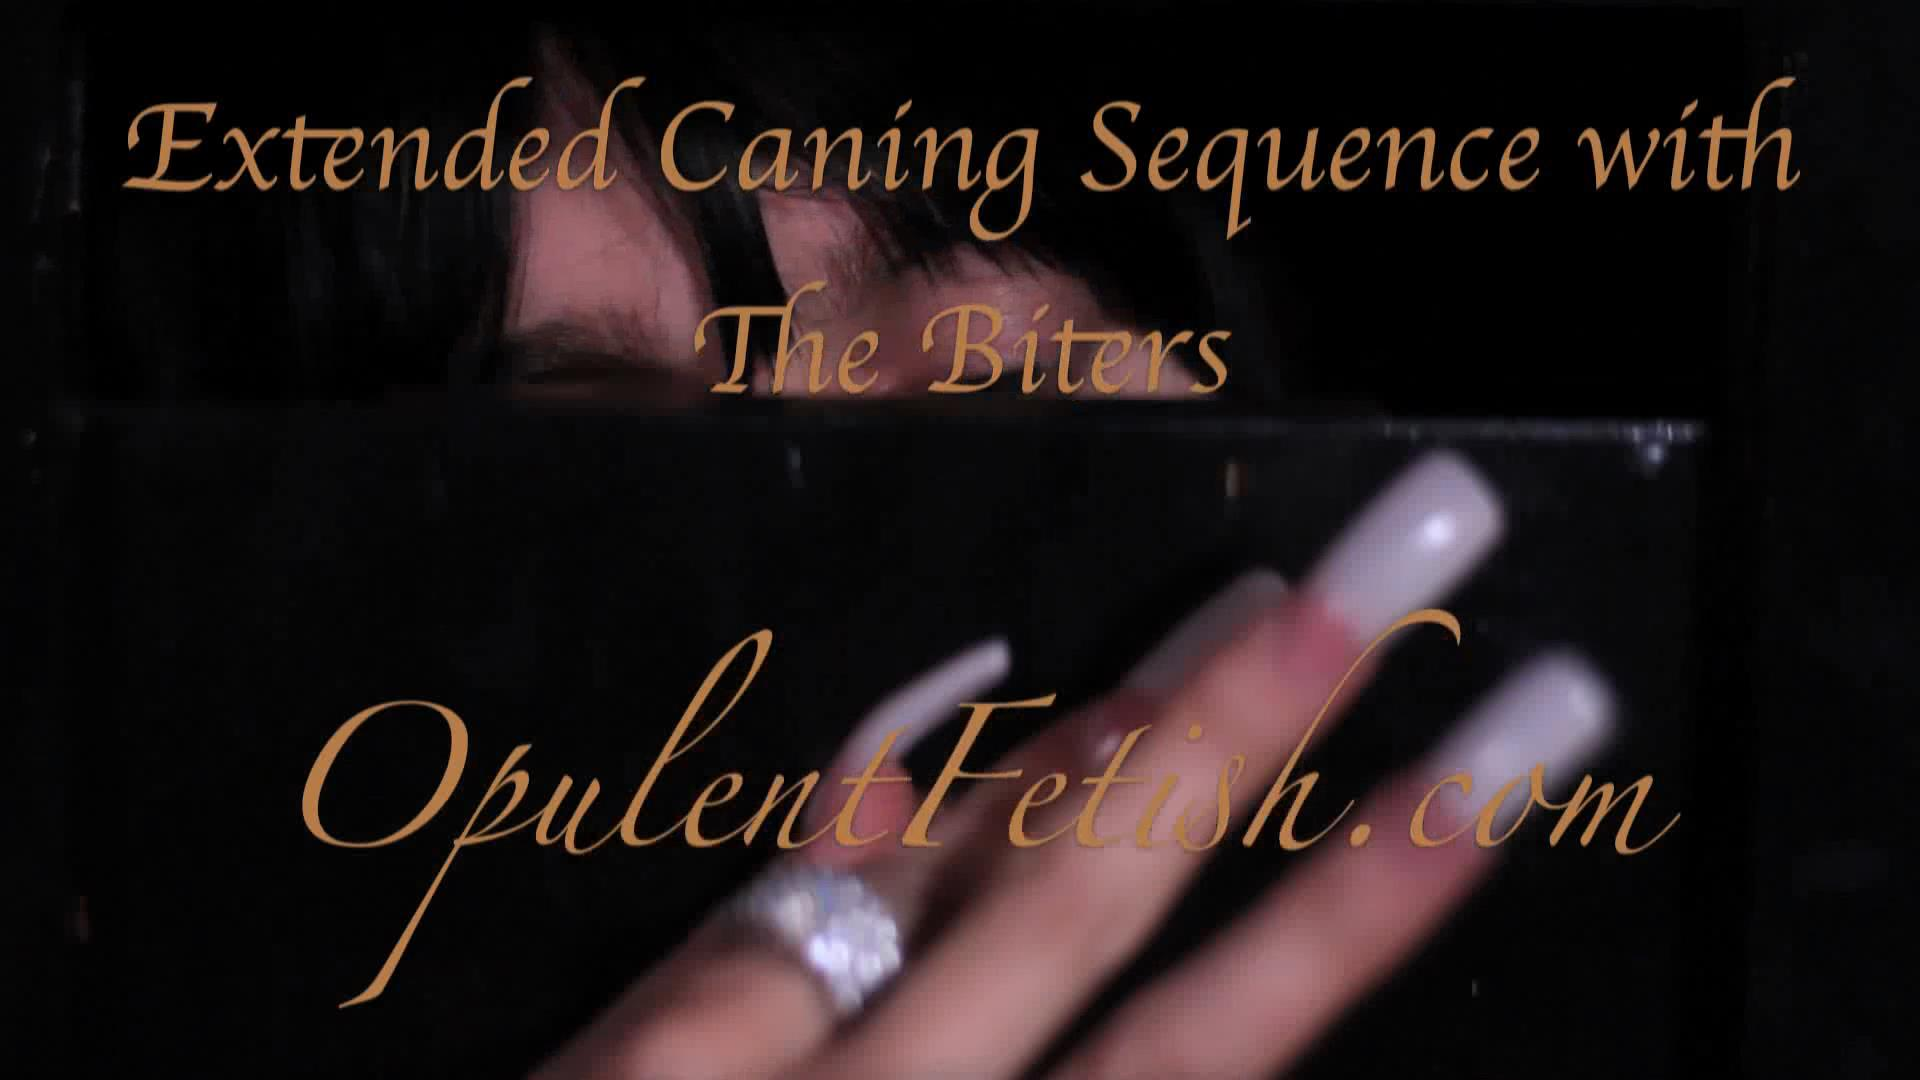 Goddess Cheyenne In Scene: Extended Caning Scene with The Biters for the Music Video Hold On - OPULENTFETISH / GODDESSCHEYENNE - FULL HD/1080p/MP4